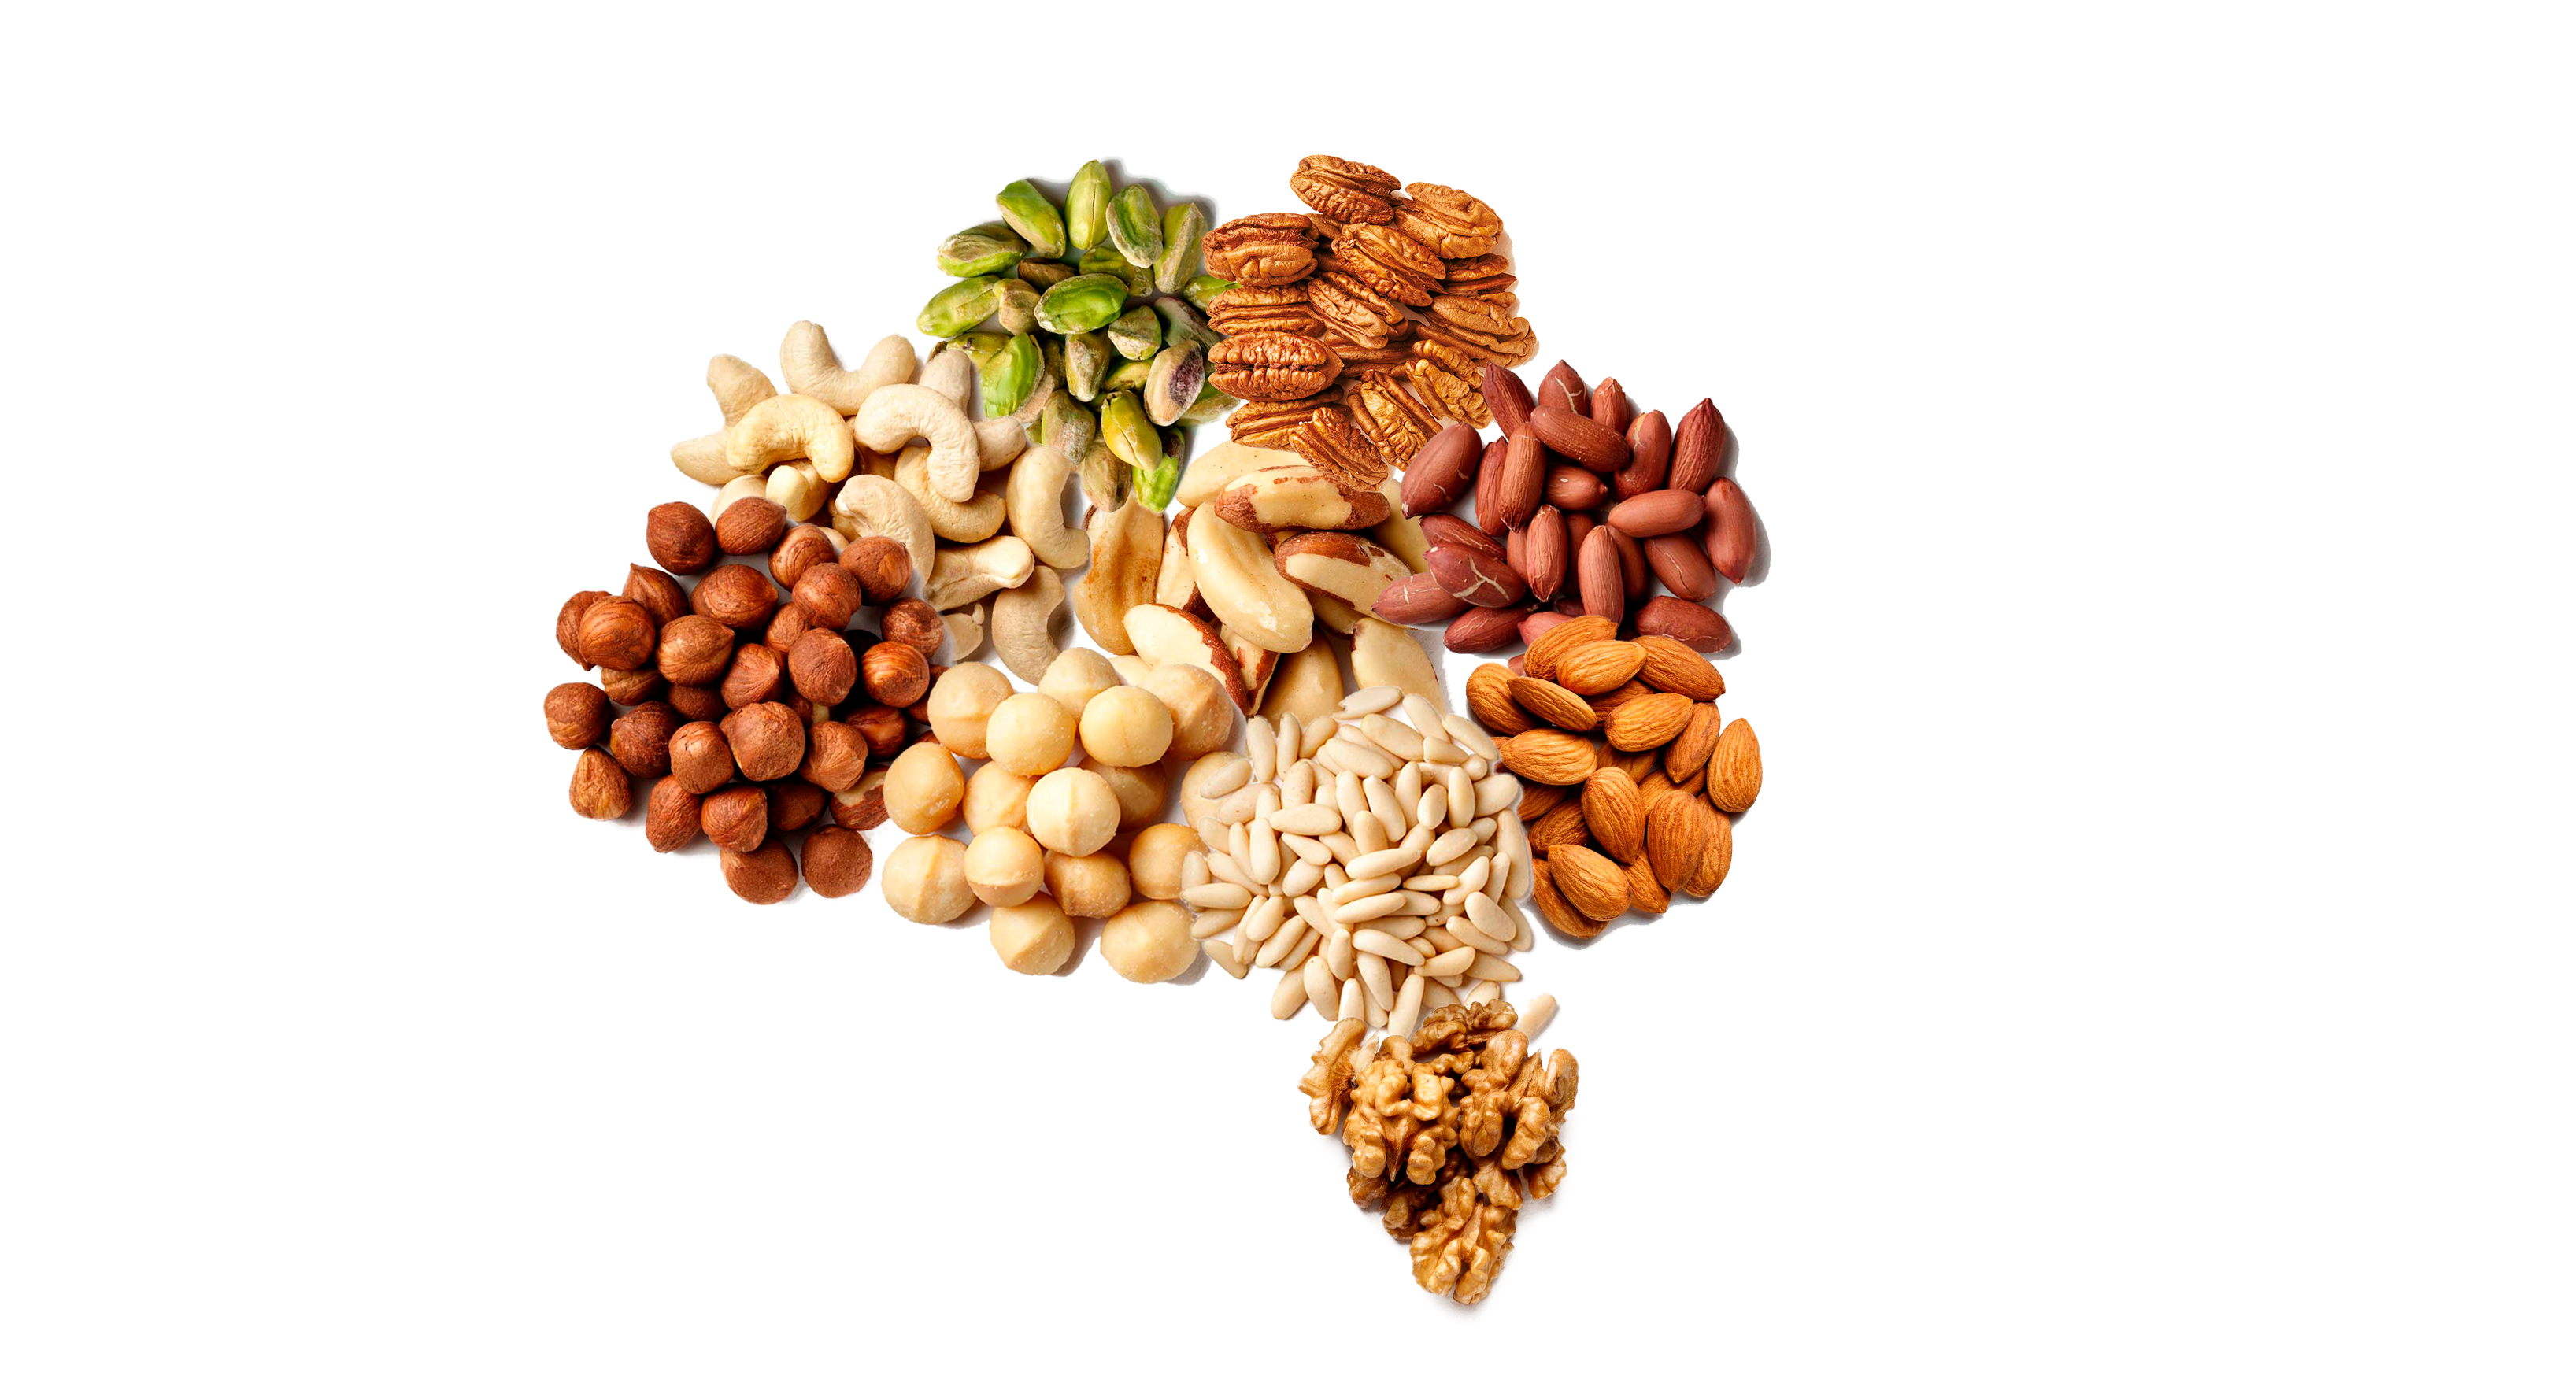 Want to Have a Better Brain Health? Diet is Key! (And Nuts Too)